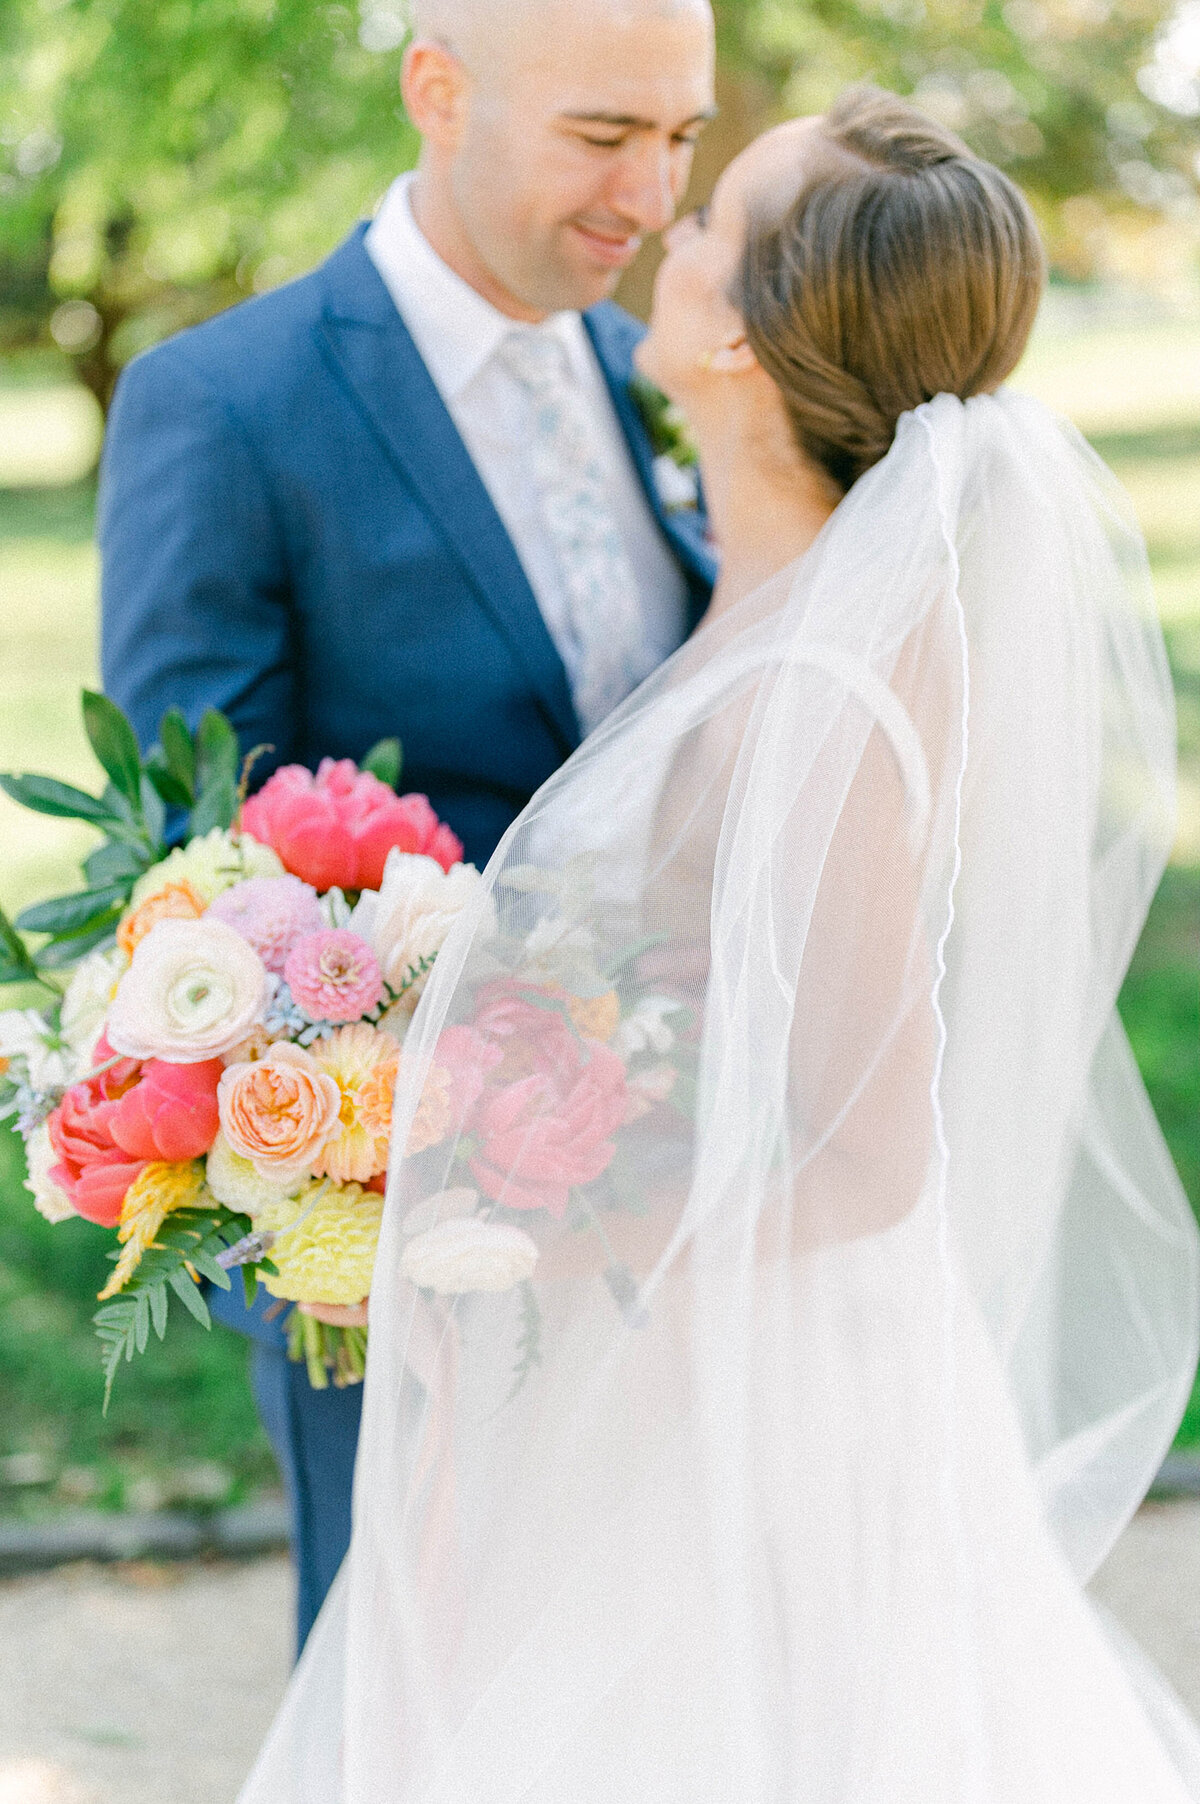 Jennifer Bosak Photography - DC Area Wedding Photography - DC, Virginia, Maryland - Jeanna + Michael - Decatur House Wedding - 17